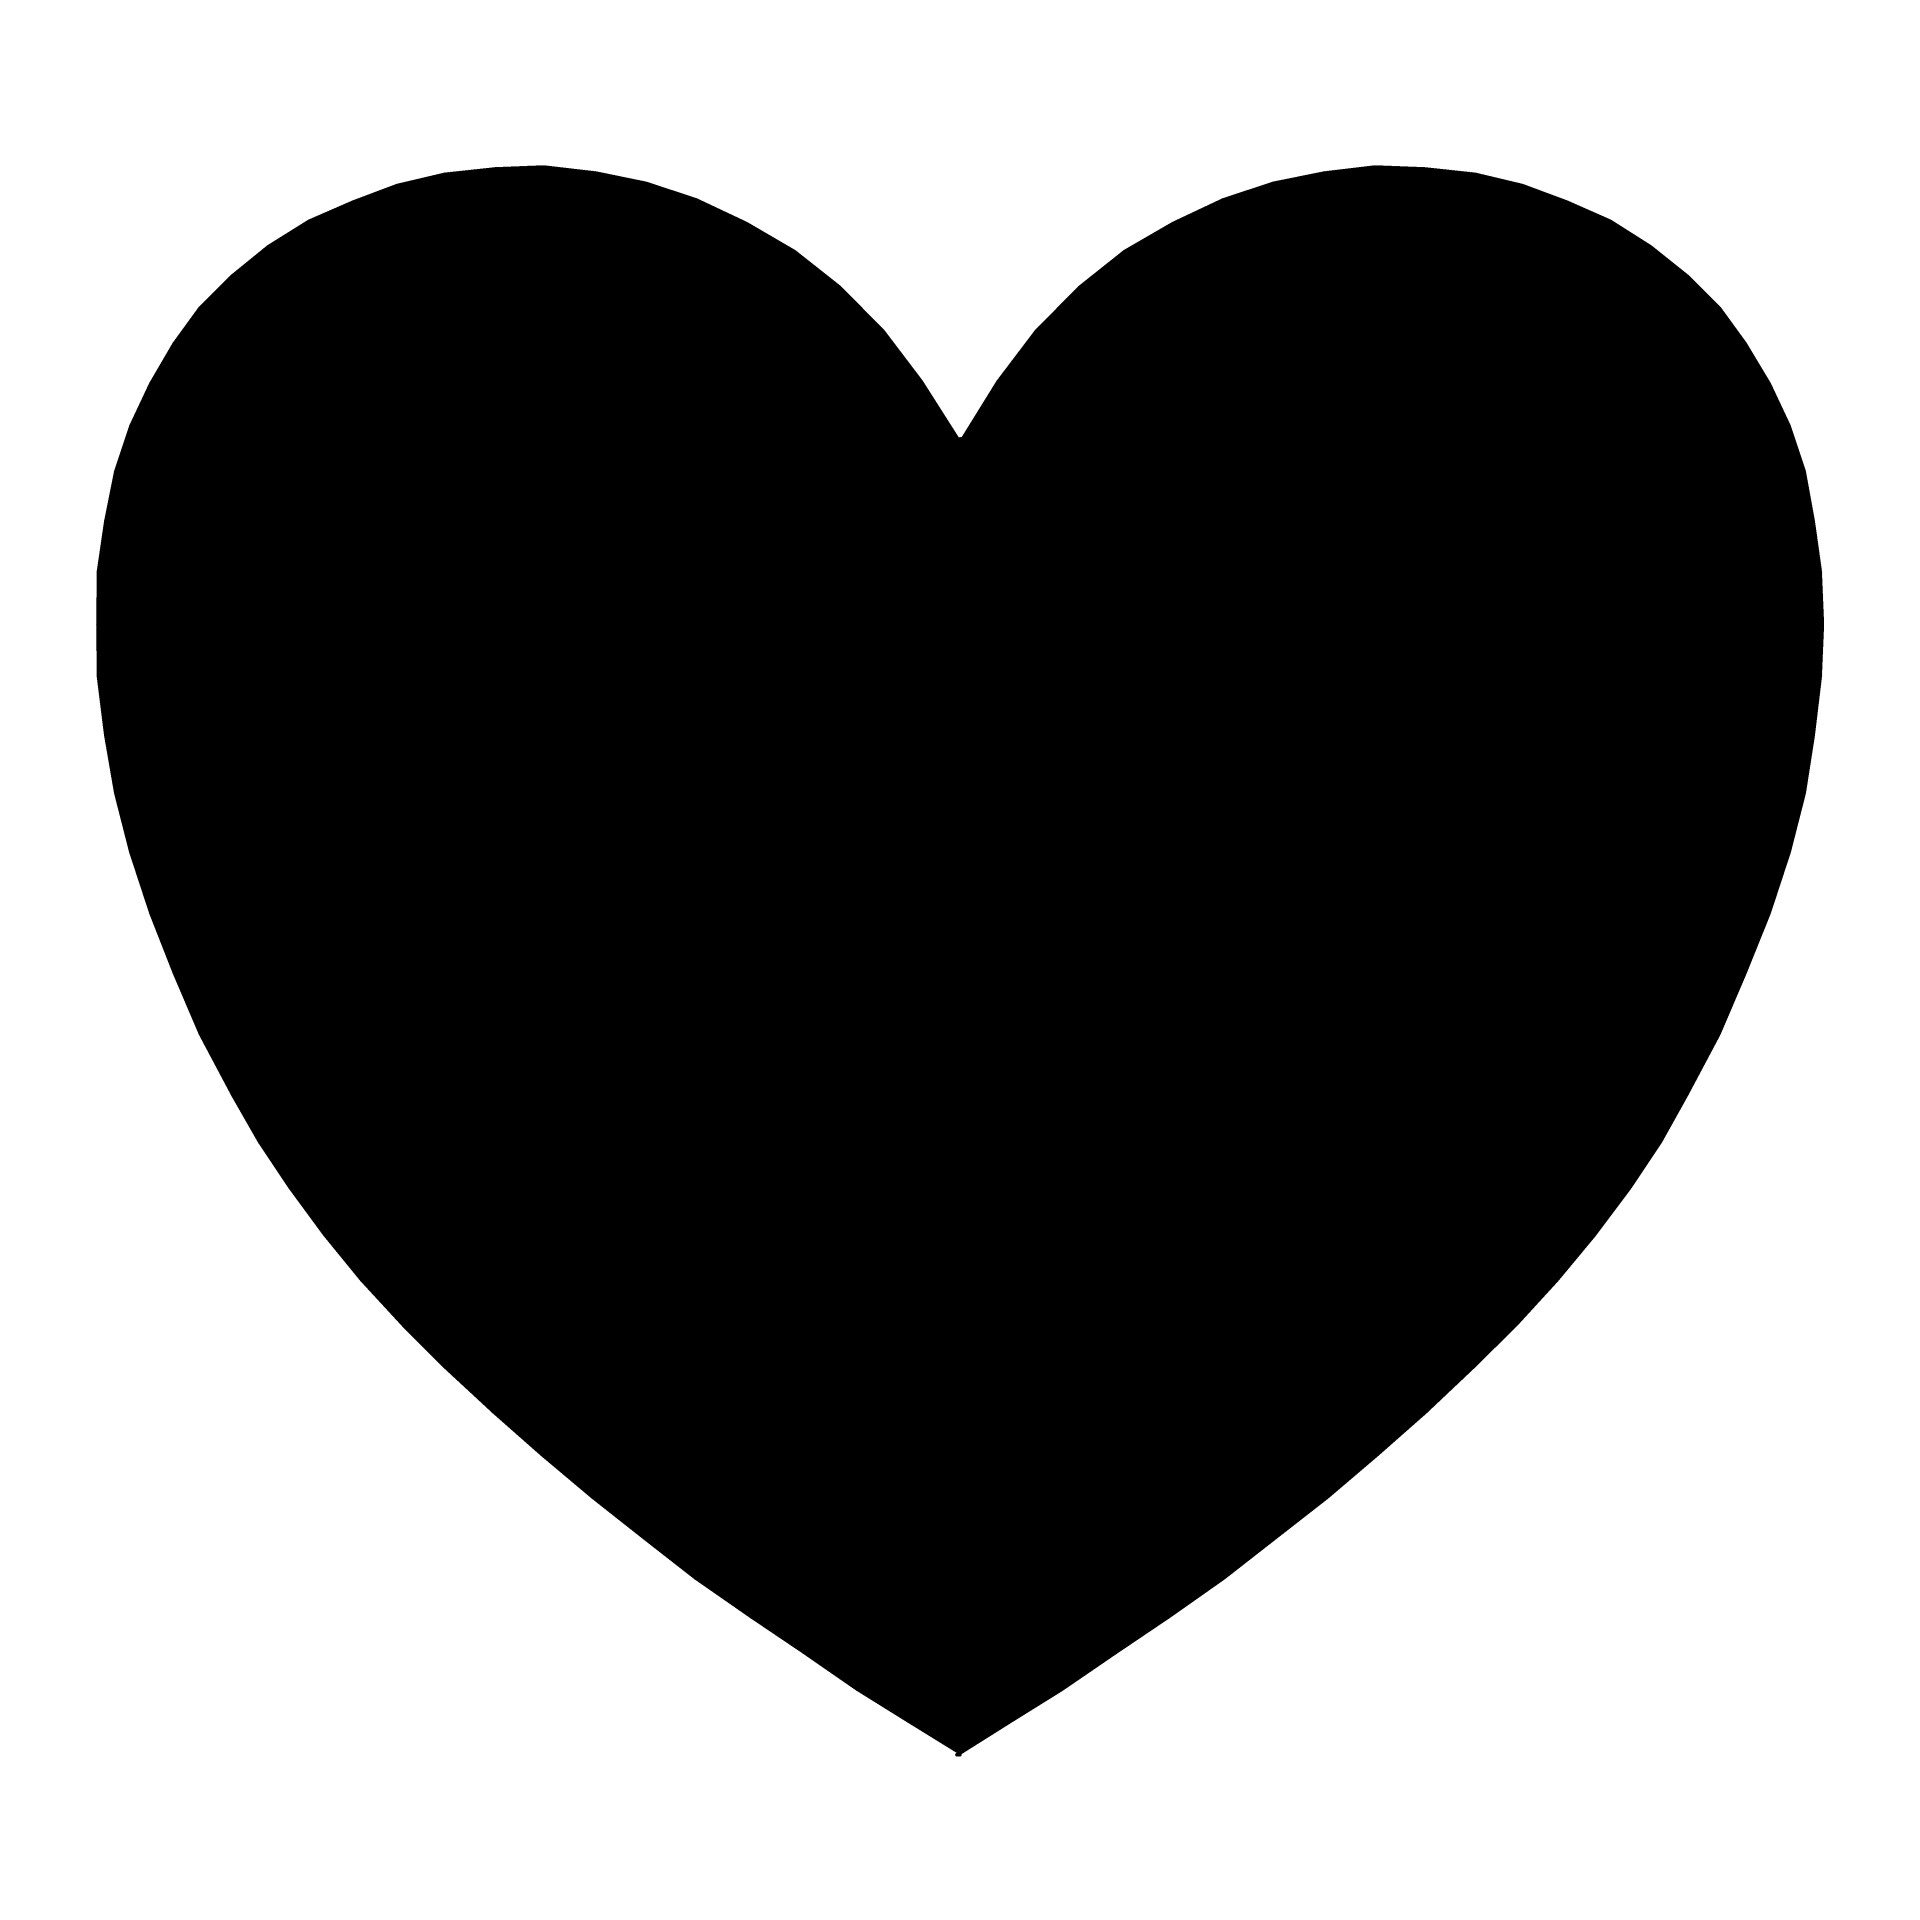 1920x1920 Heart Silhouette Animal Rescue League Of Berks County